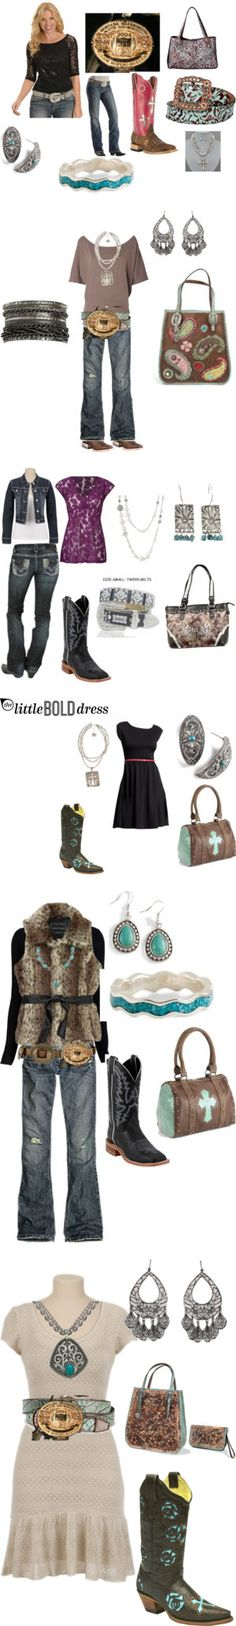 """""""National Finals Rodeo 2012"""" by rodeorosecowgirlboutique on Polyvore"""